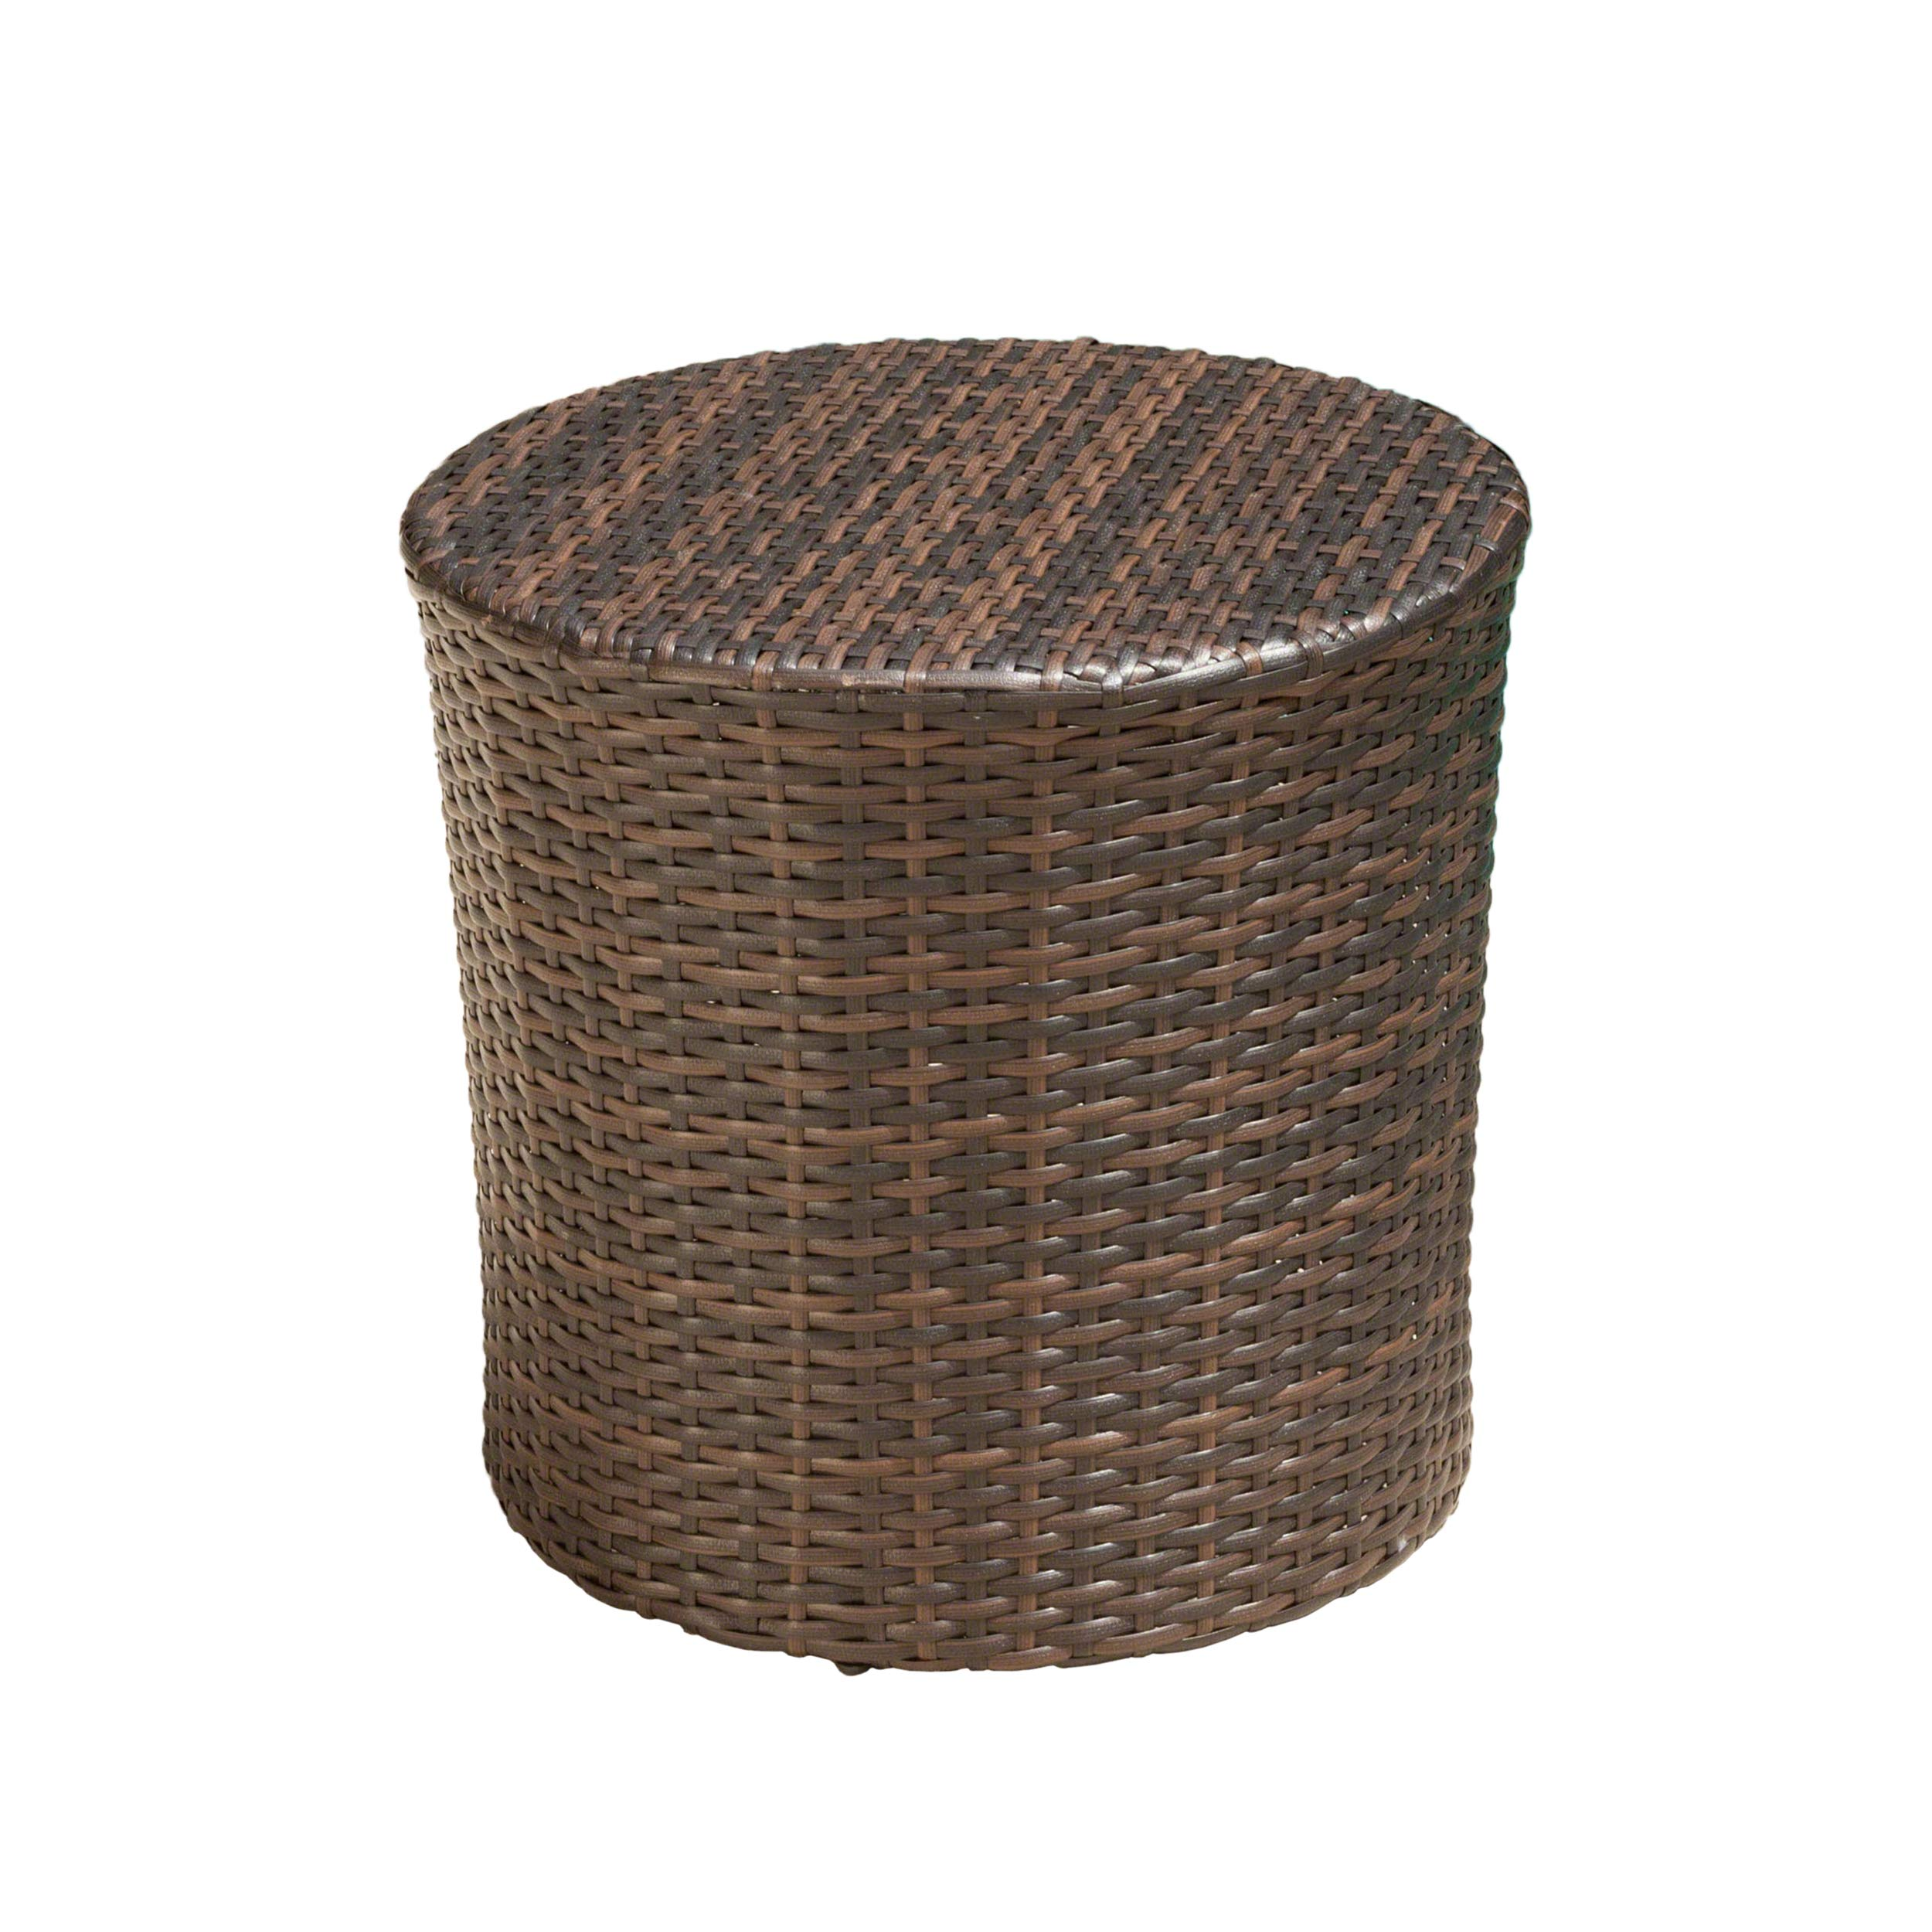 Christopher Knight Home 221495 Overton Outdoor Wicker Barrel Side Table, Brown by Christopher Knight Home